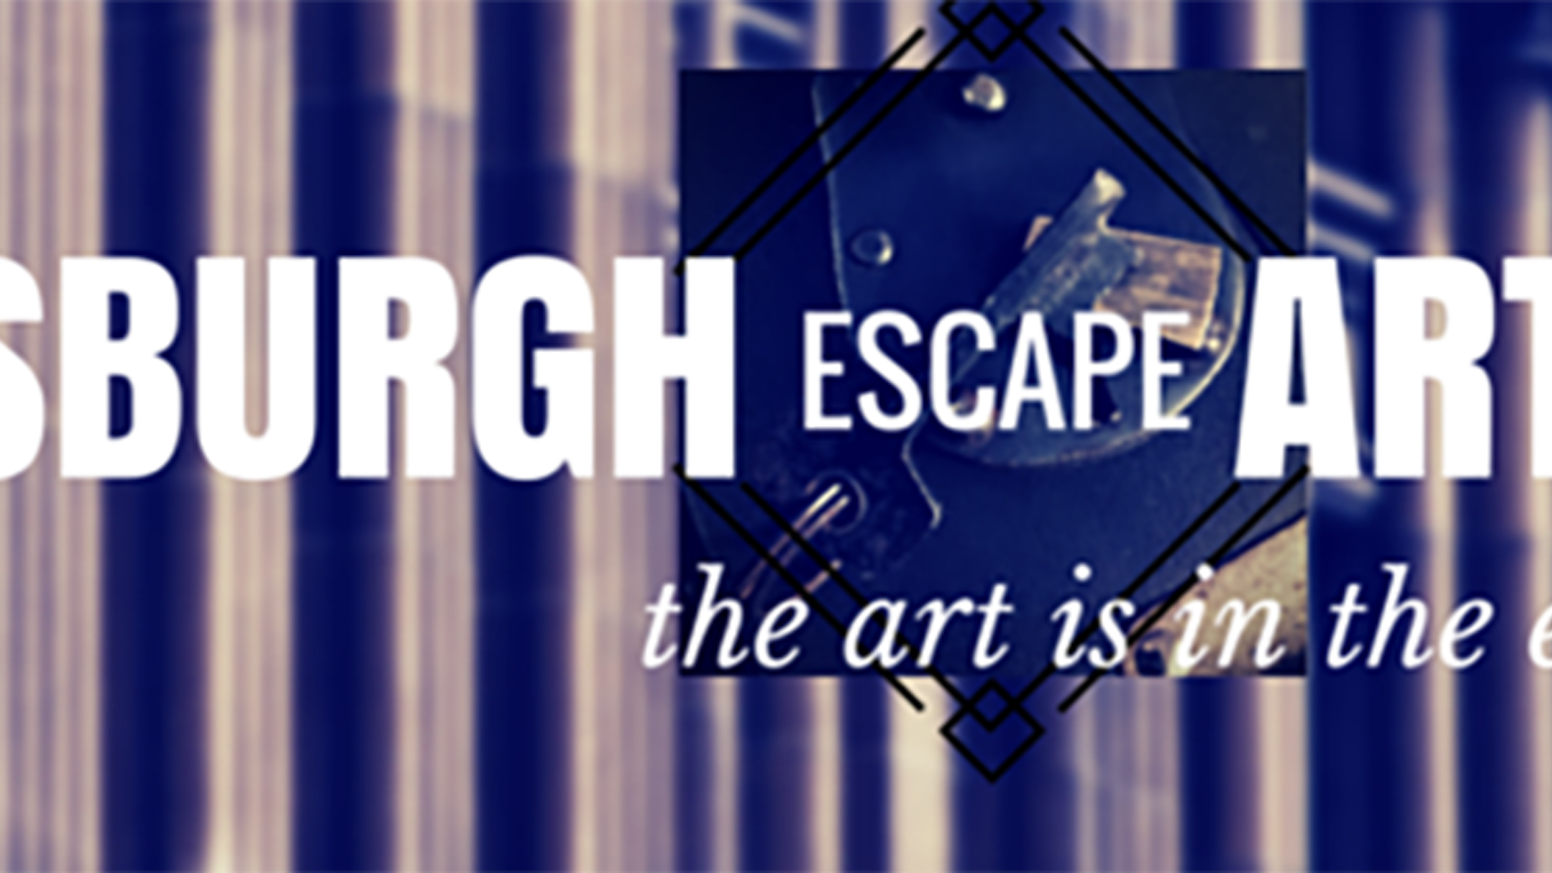 Pittsburgh Escape Artists The Art Is In The Escape By